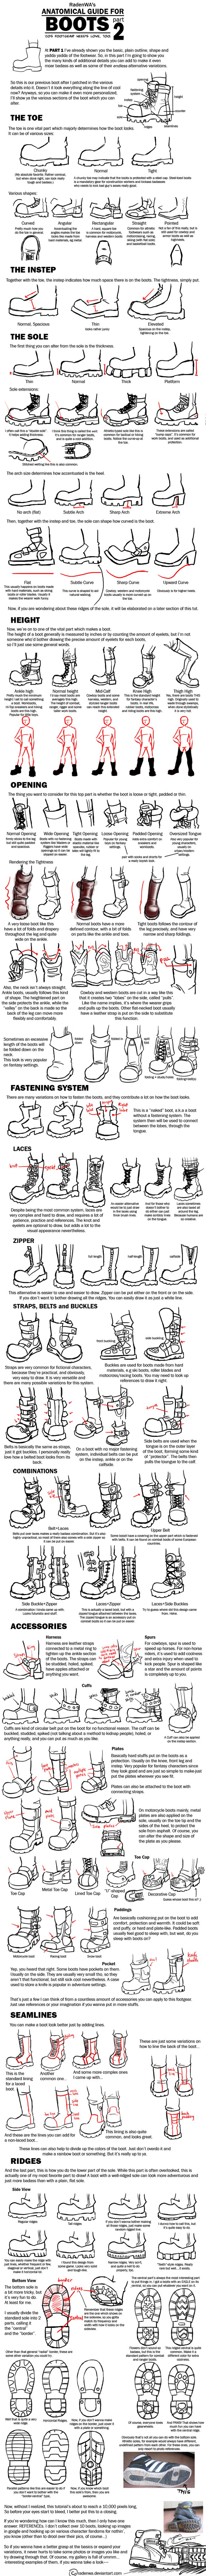 WA's BOOT Anatomy Tutorial Pt2 by *RadenWA on deviantART